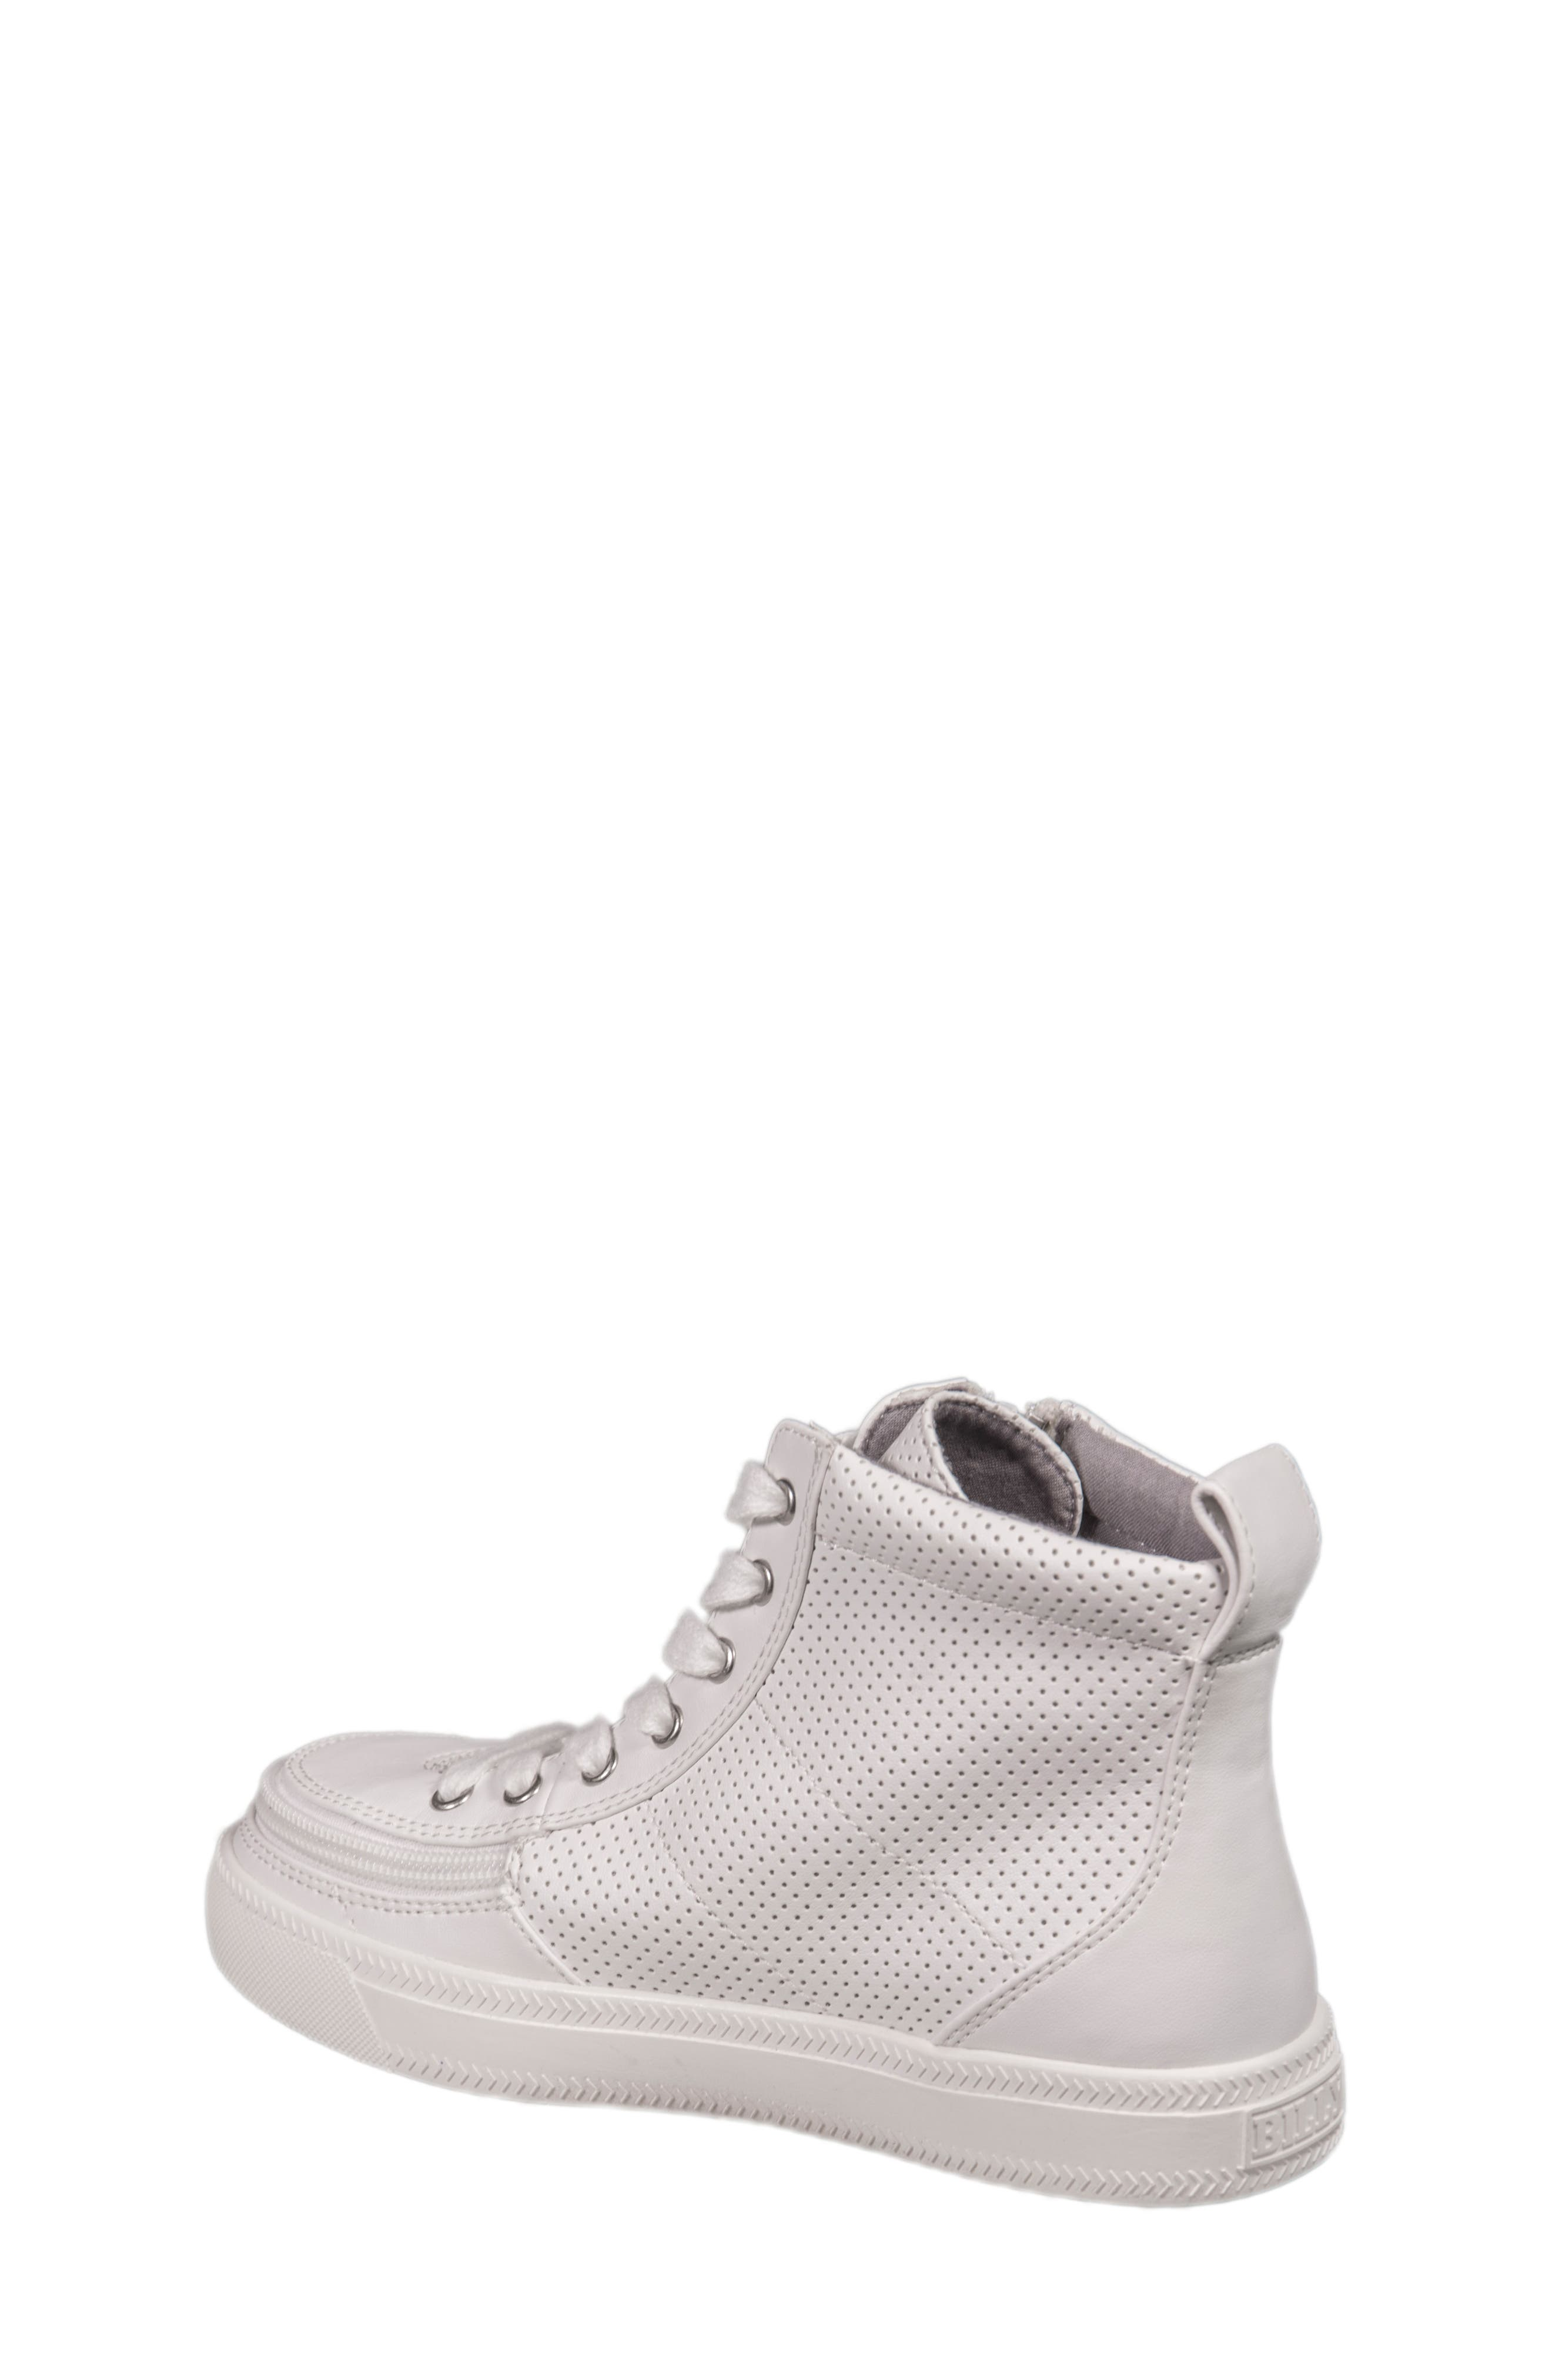 Zip Around Perforated High Top Sneaker,                             Alternate thumbnail 2, color,                             White Perforated